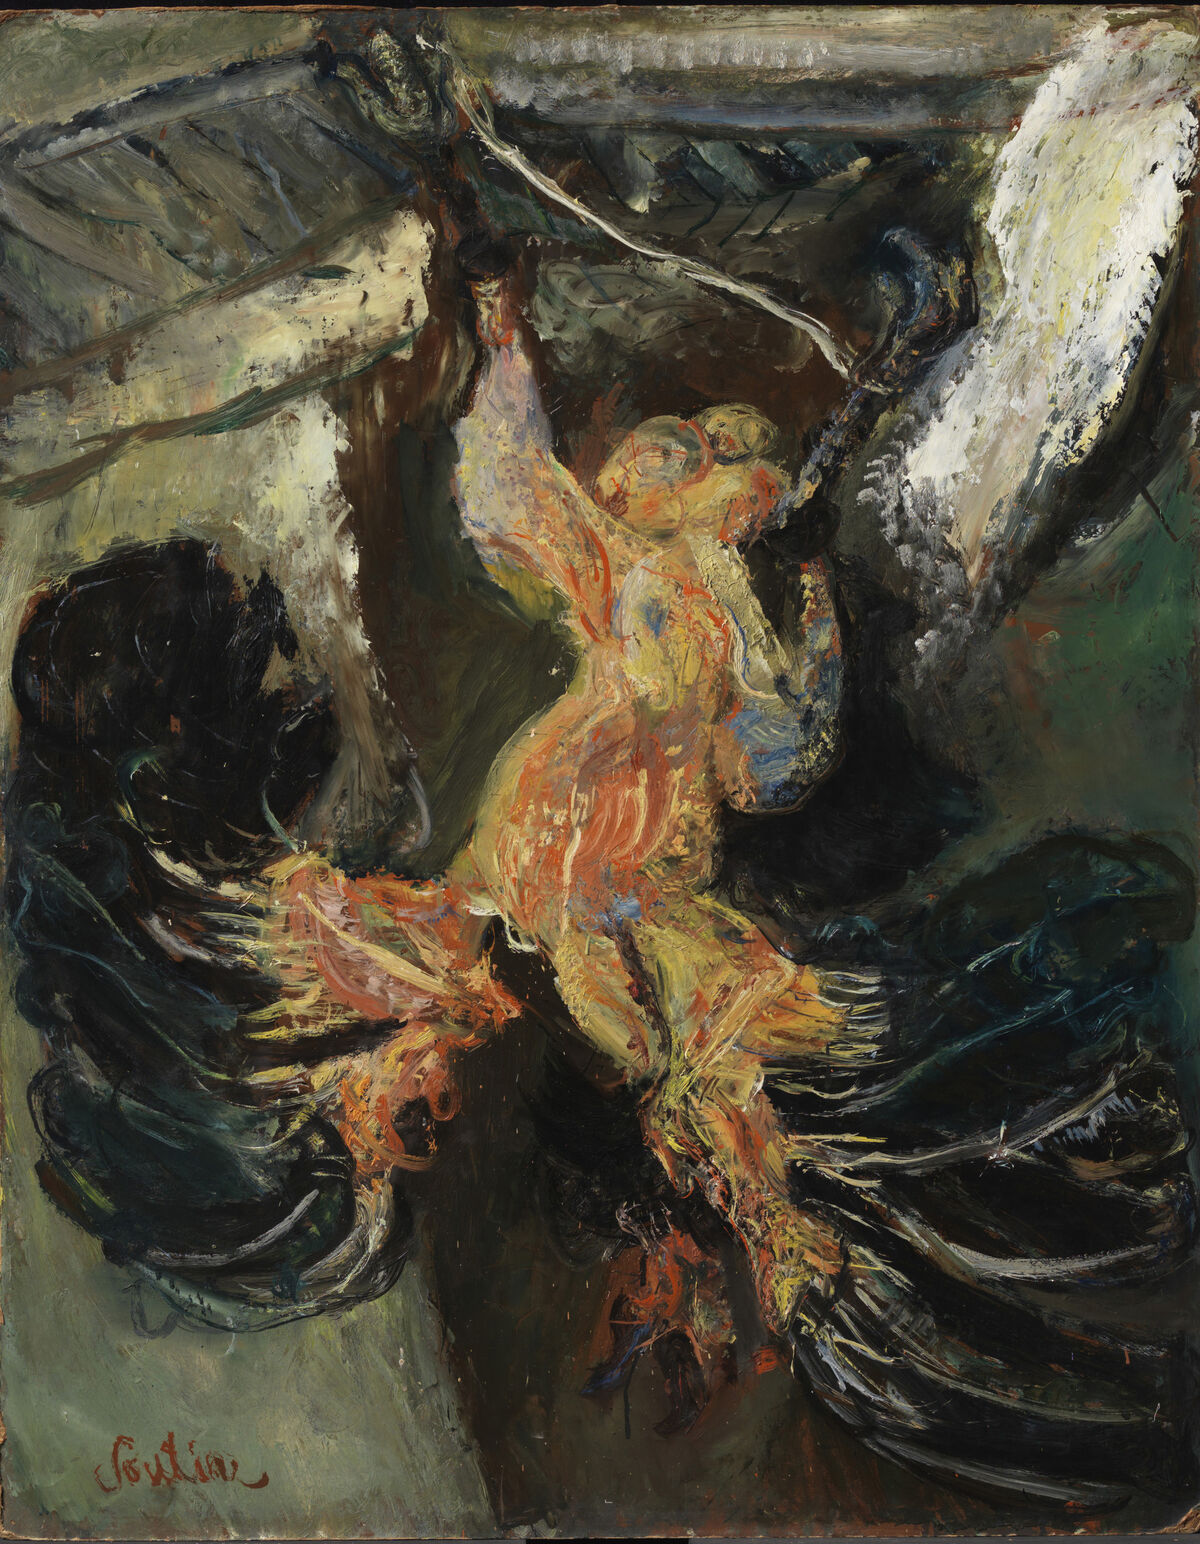 Chaim Soutine, Hanging Turkey, c. 1925. © Artists Rights Society (ARS), New York. Photo by Bruce M. White. Courtesy of The Henry and Rose Pearlman Collection / Art Resource, New York and The Jewish Museum.